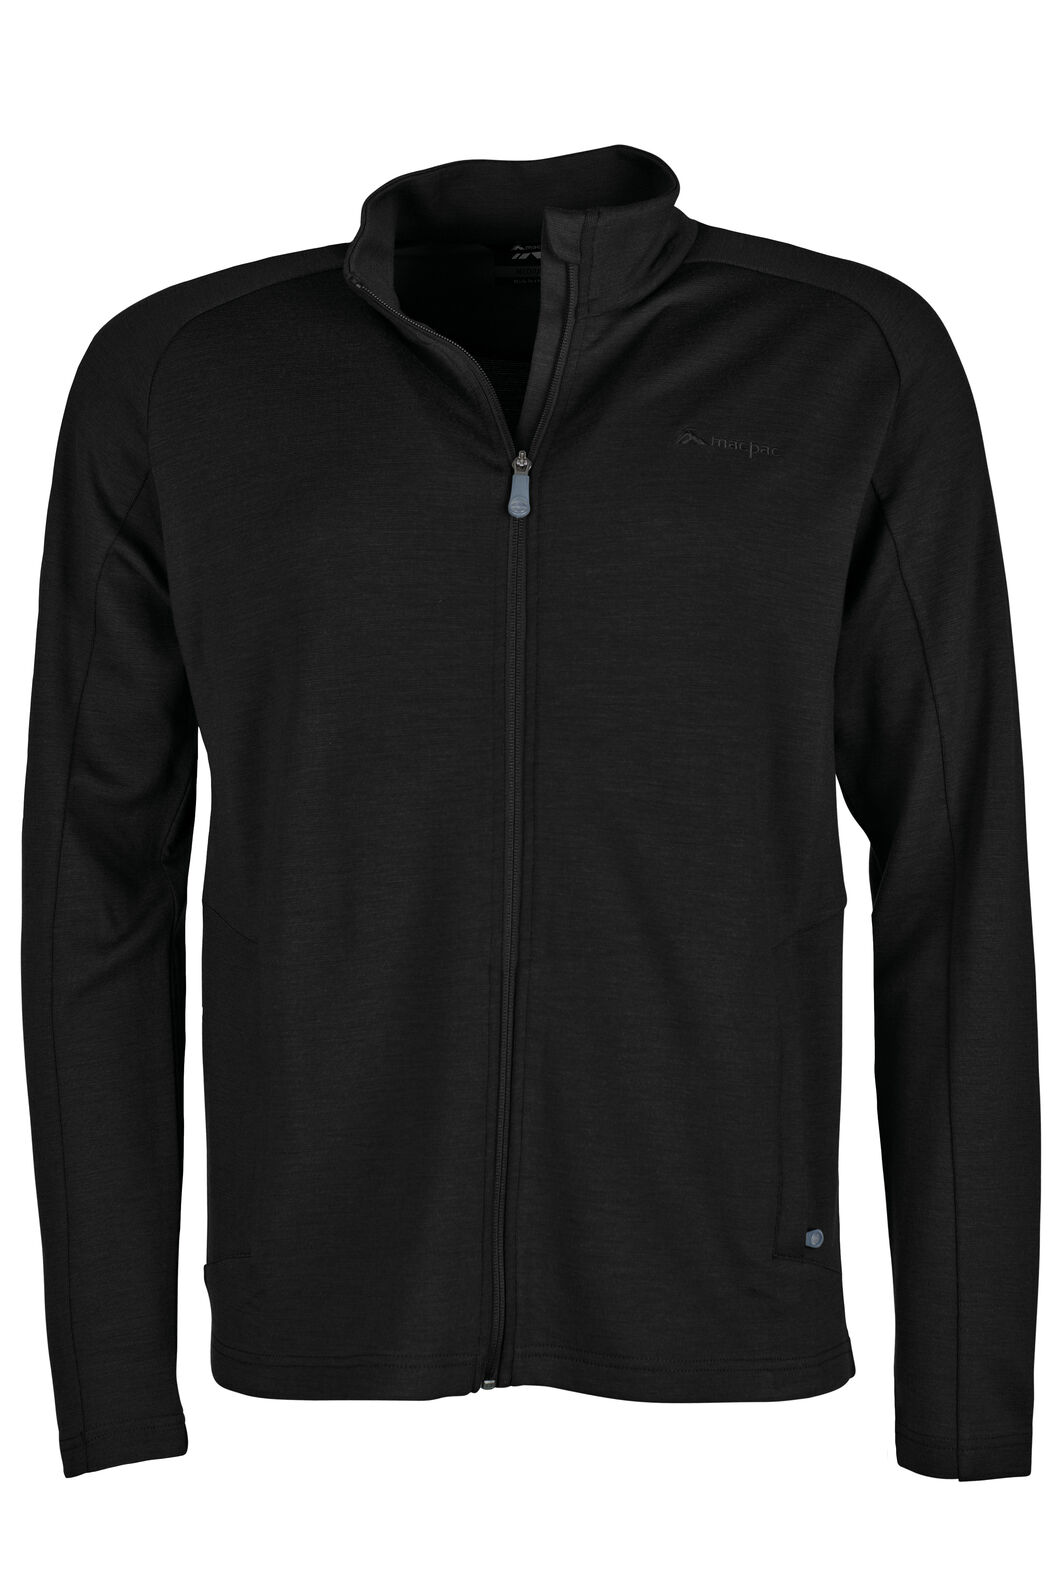 Macpac Brunner 390 Merino Jacket - Men's, Black, hi-res